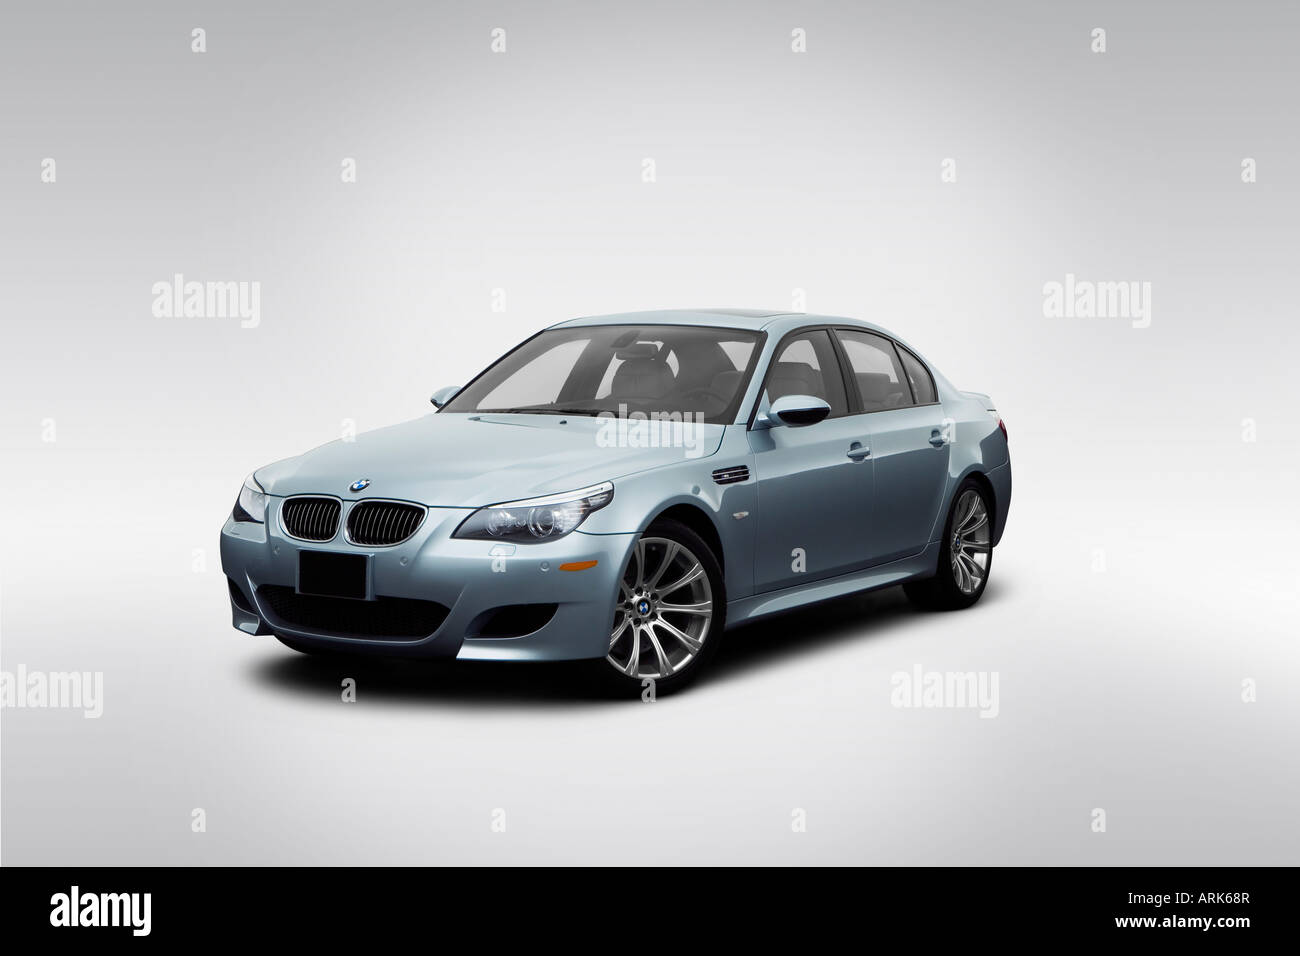 2008 BMW 5 Series M5 In Silver